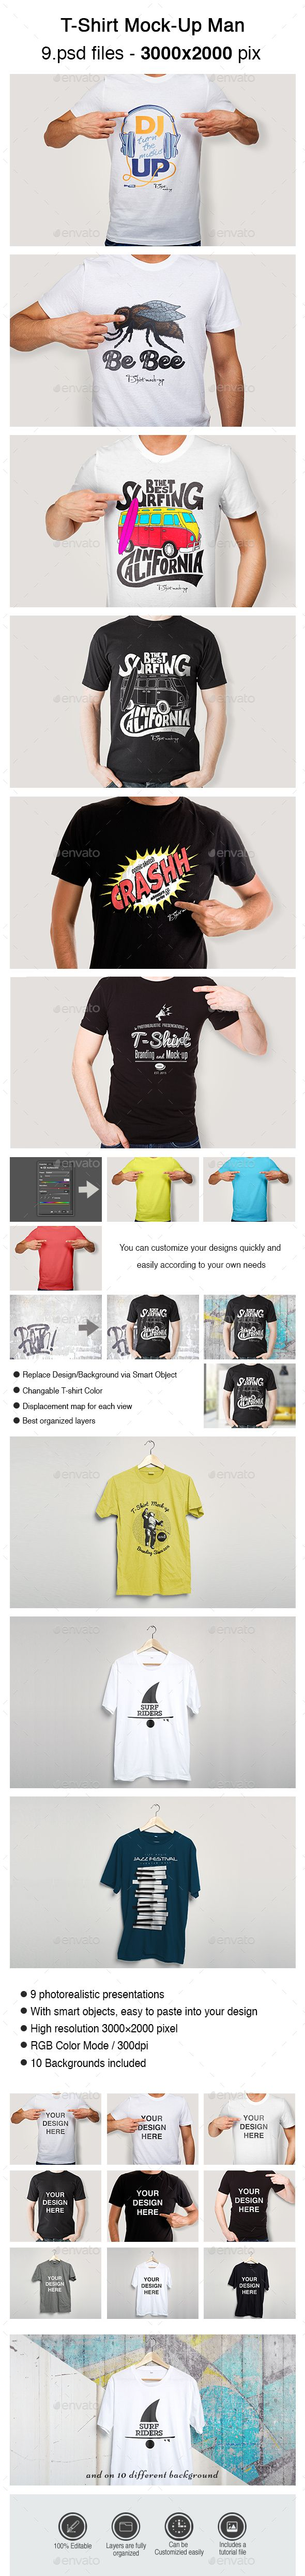 Design your own t shirt free download - T Shirt Mock Up Man Design Download Http Graphicriver